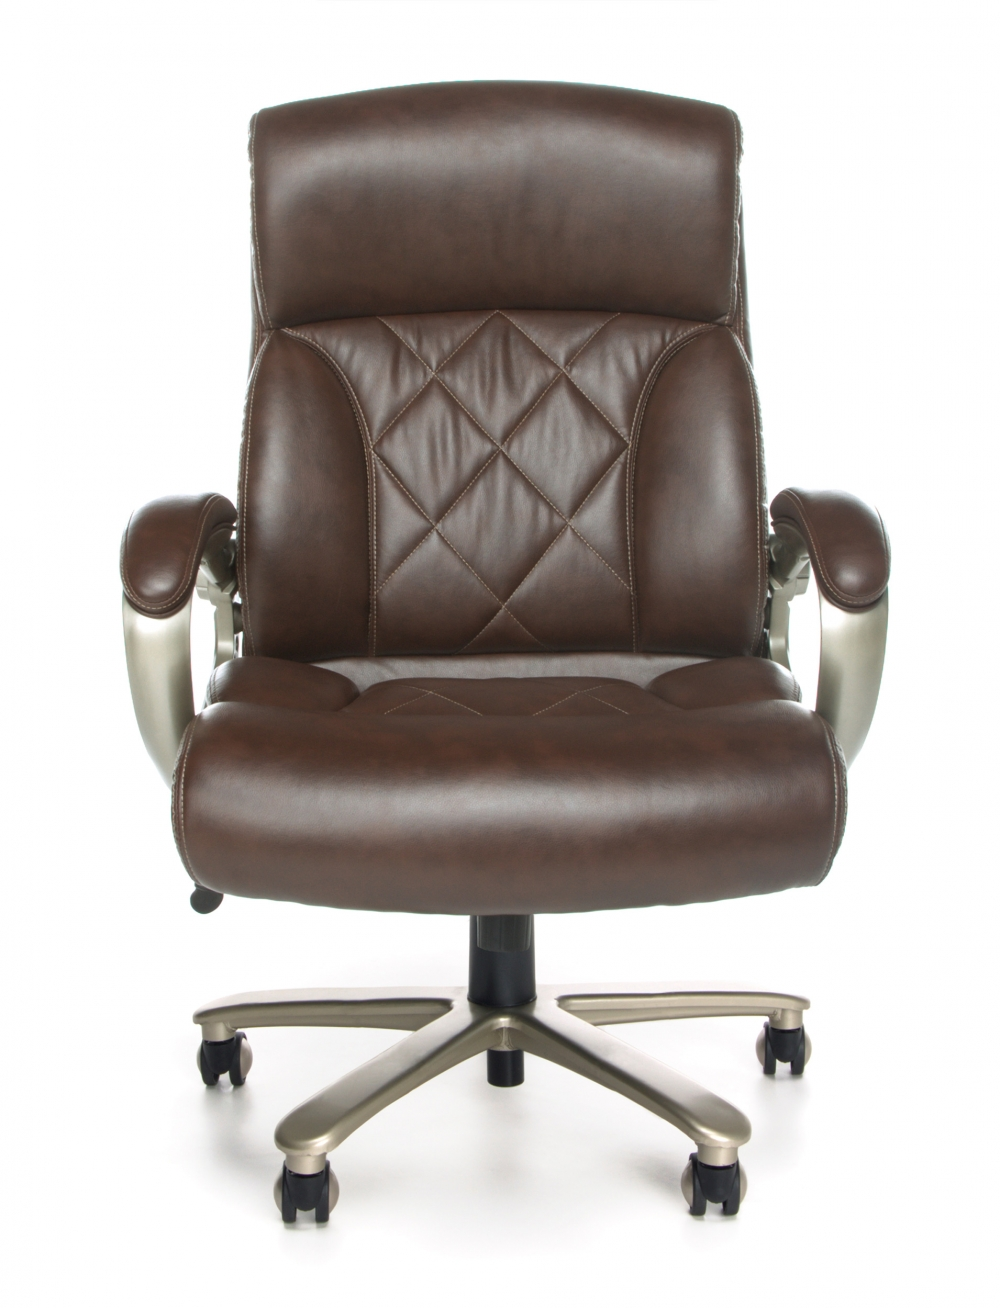 Big and tall executive office chairs cub 812 lx mfo